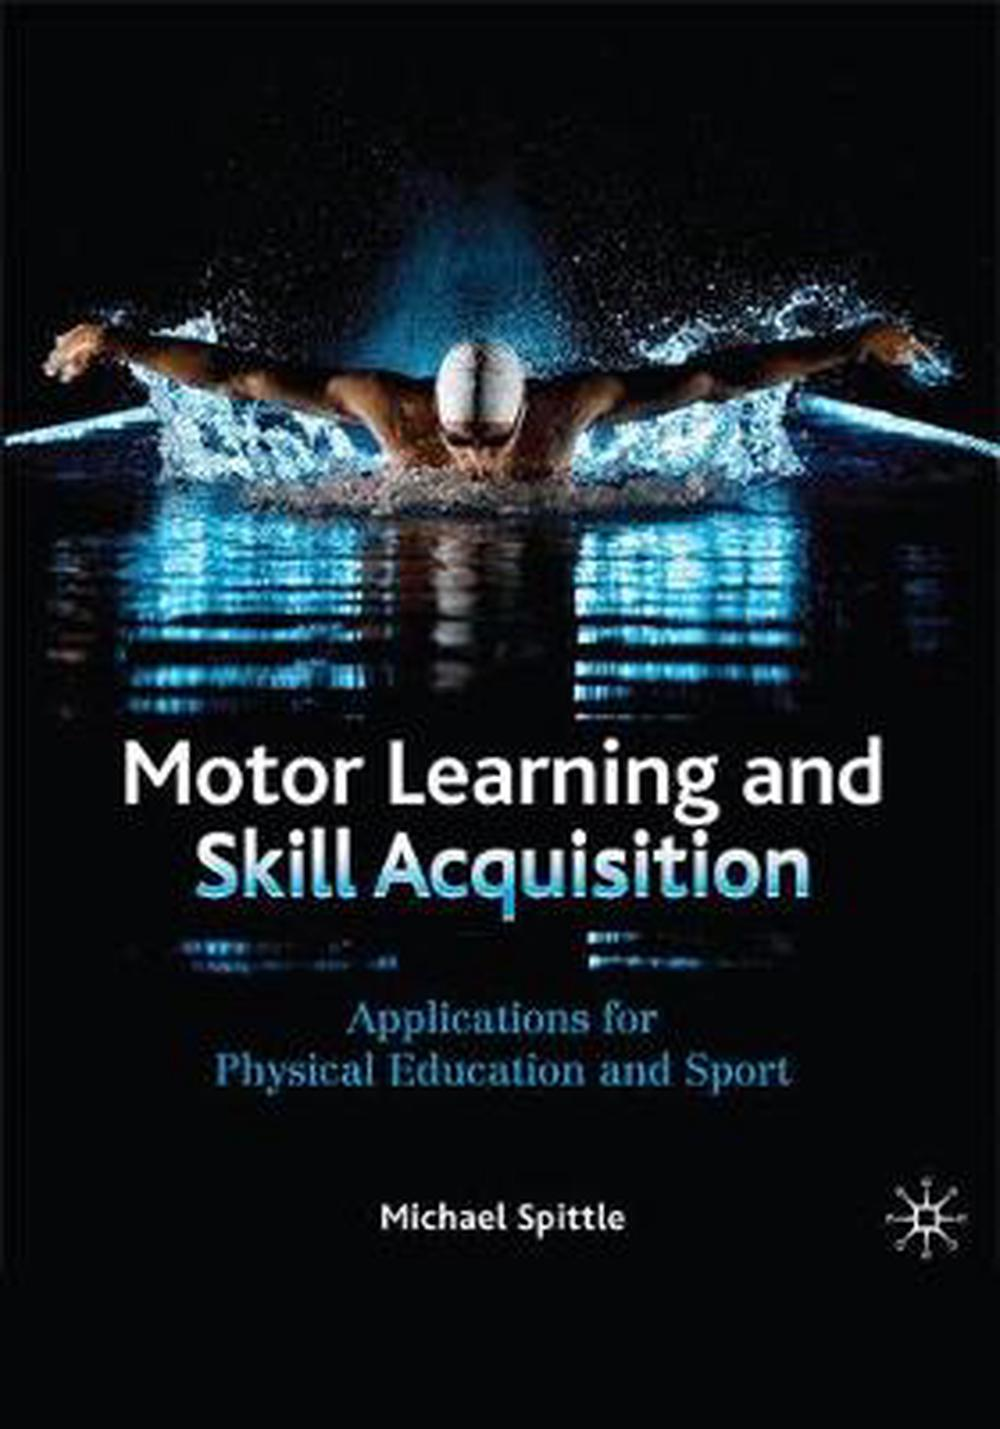 Motor Learning and Skill Acquisition